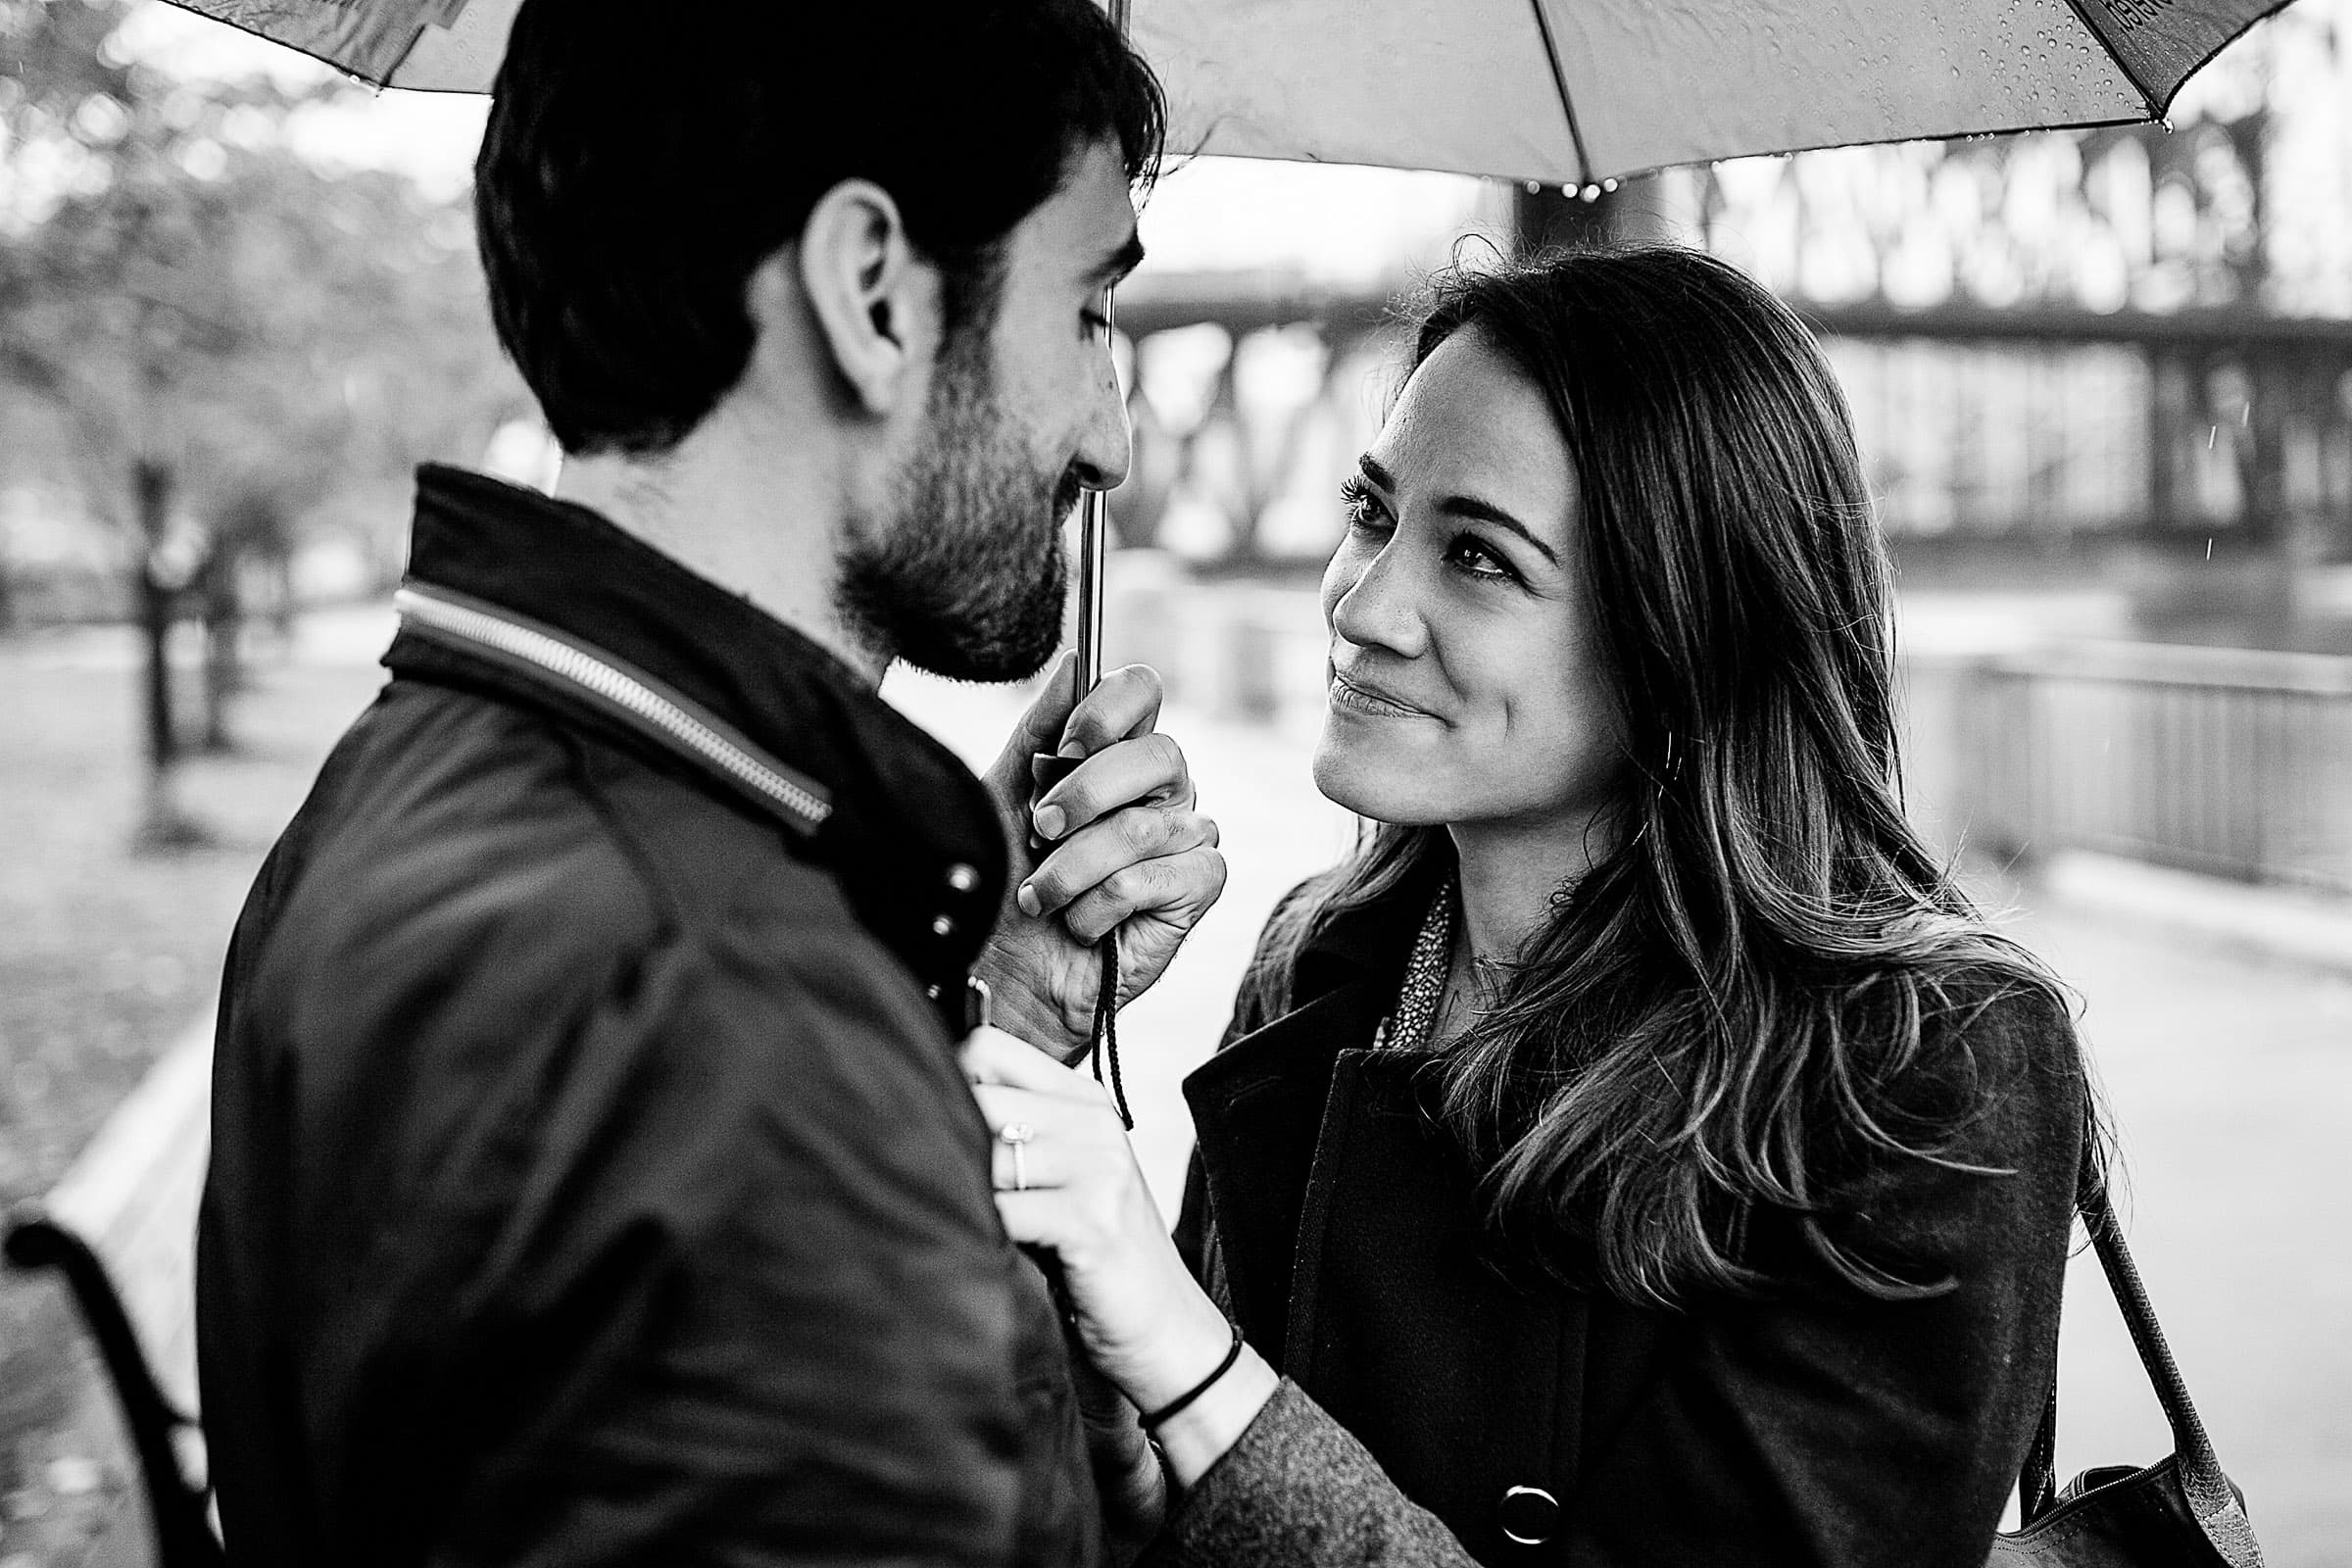 An emotional Portland engagement proposal photo under an umbrella on the waterfront park